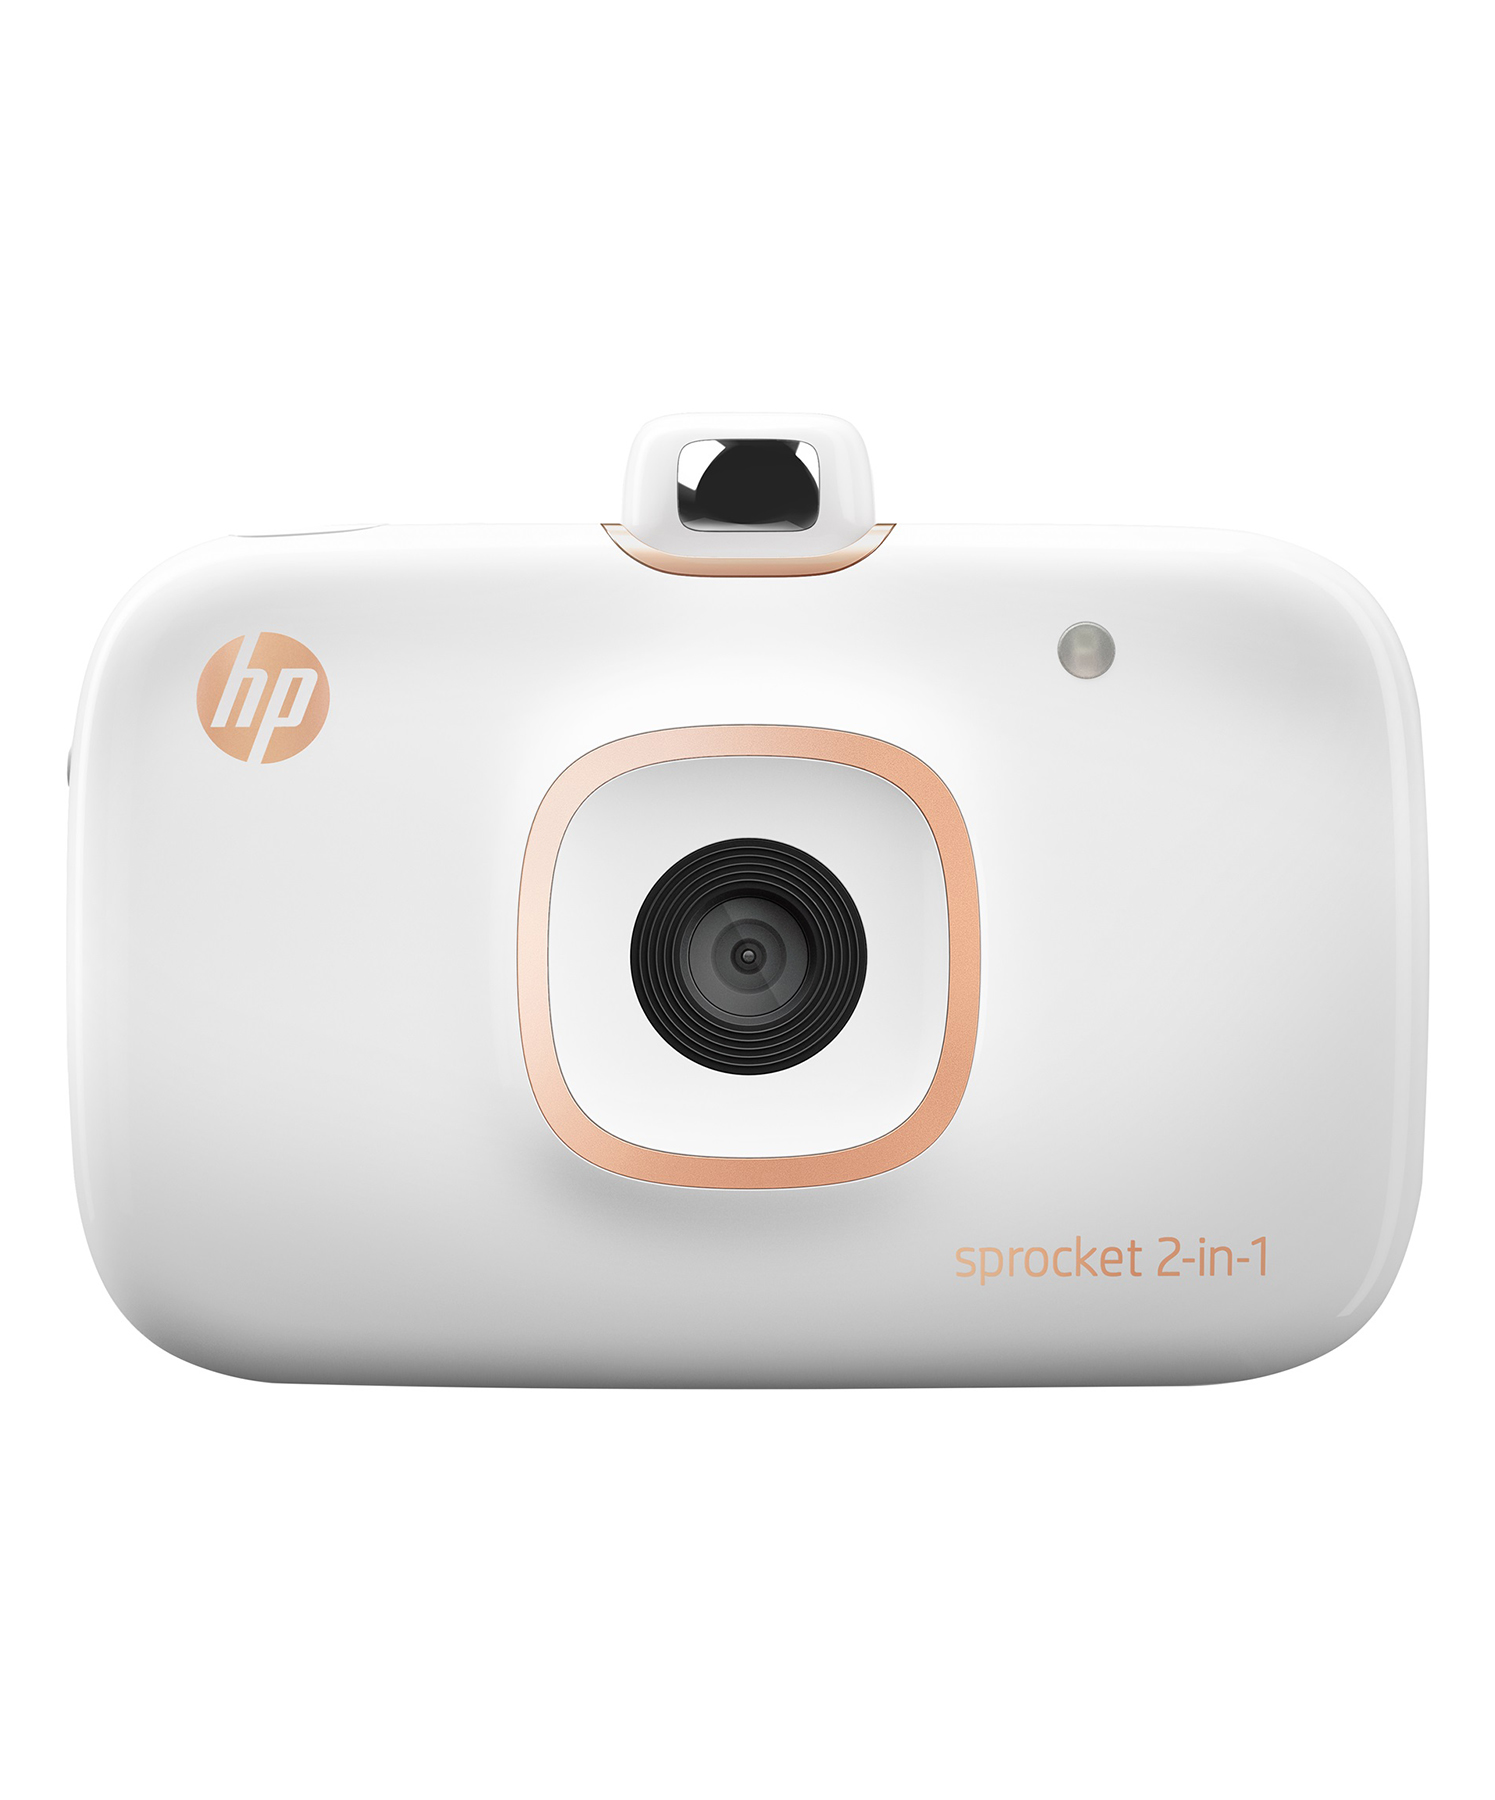 HP Sprocket 2-in-1 camera and printer